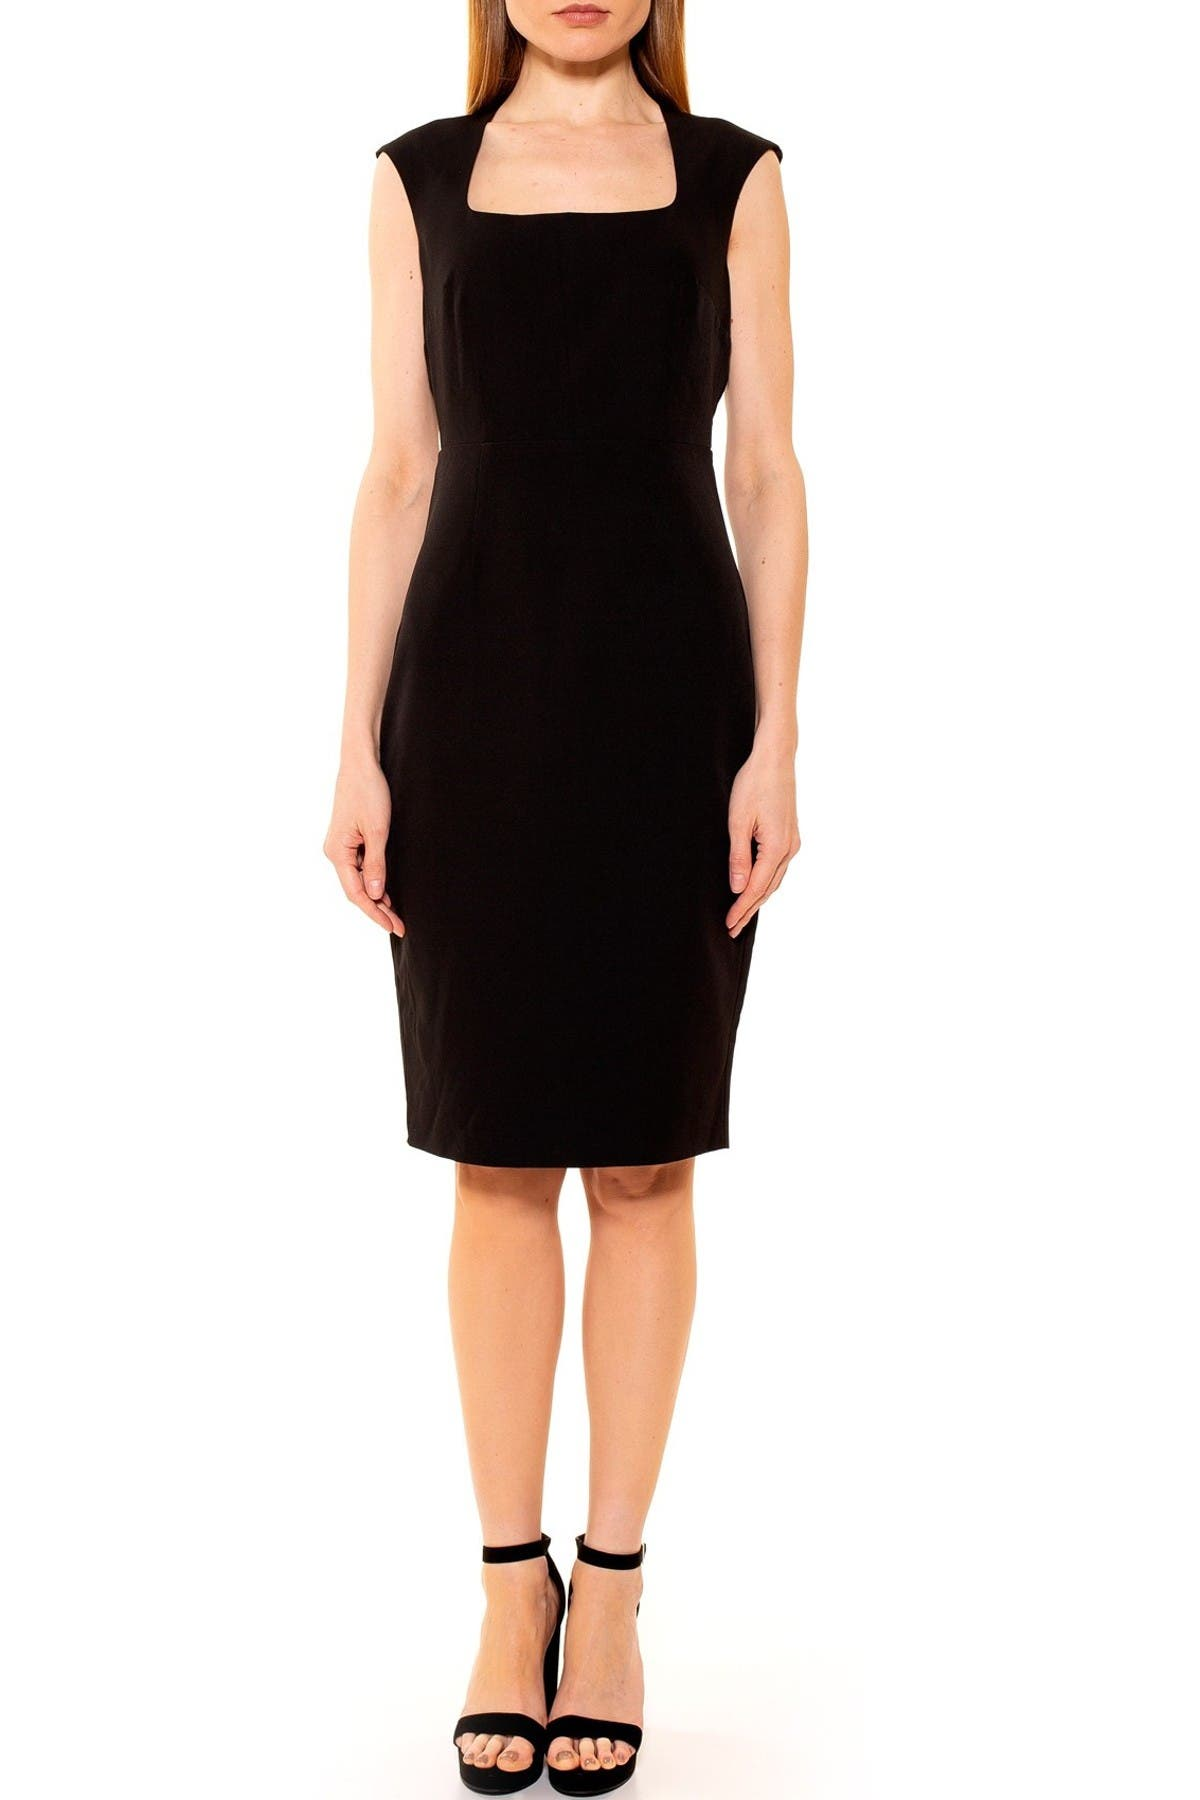 Image of Alexia Admor Ariana Scoop Neck Sheath Dress